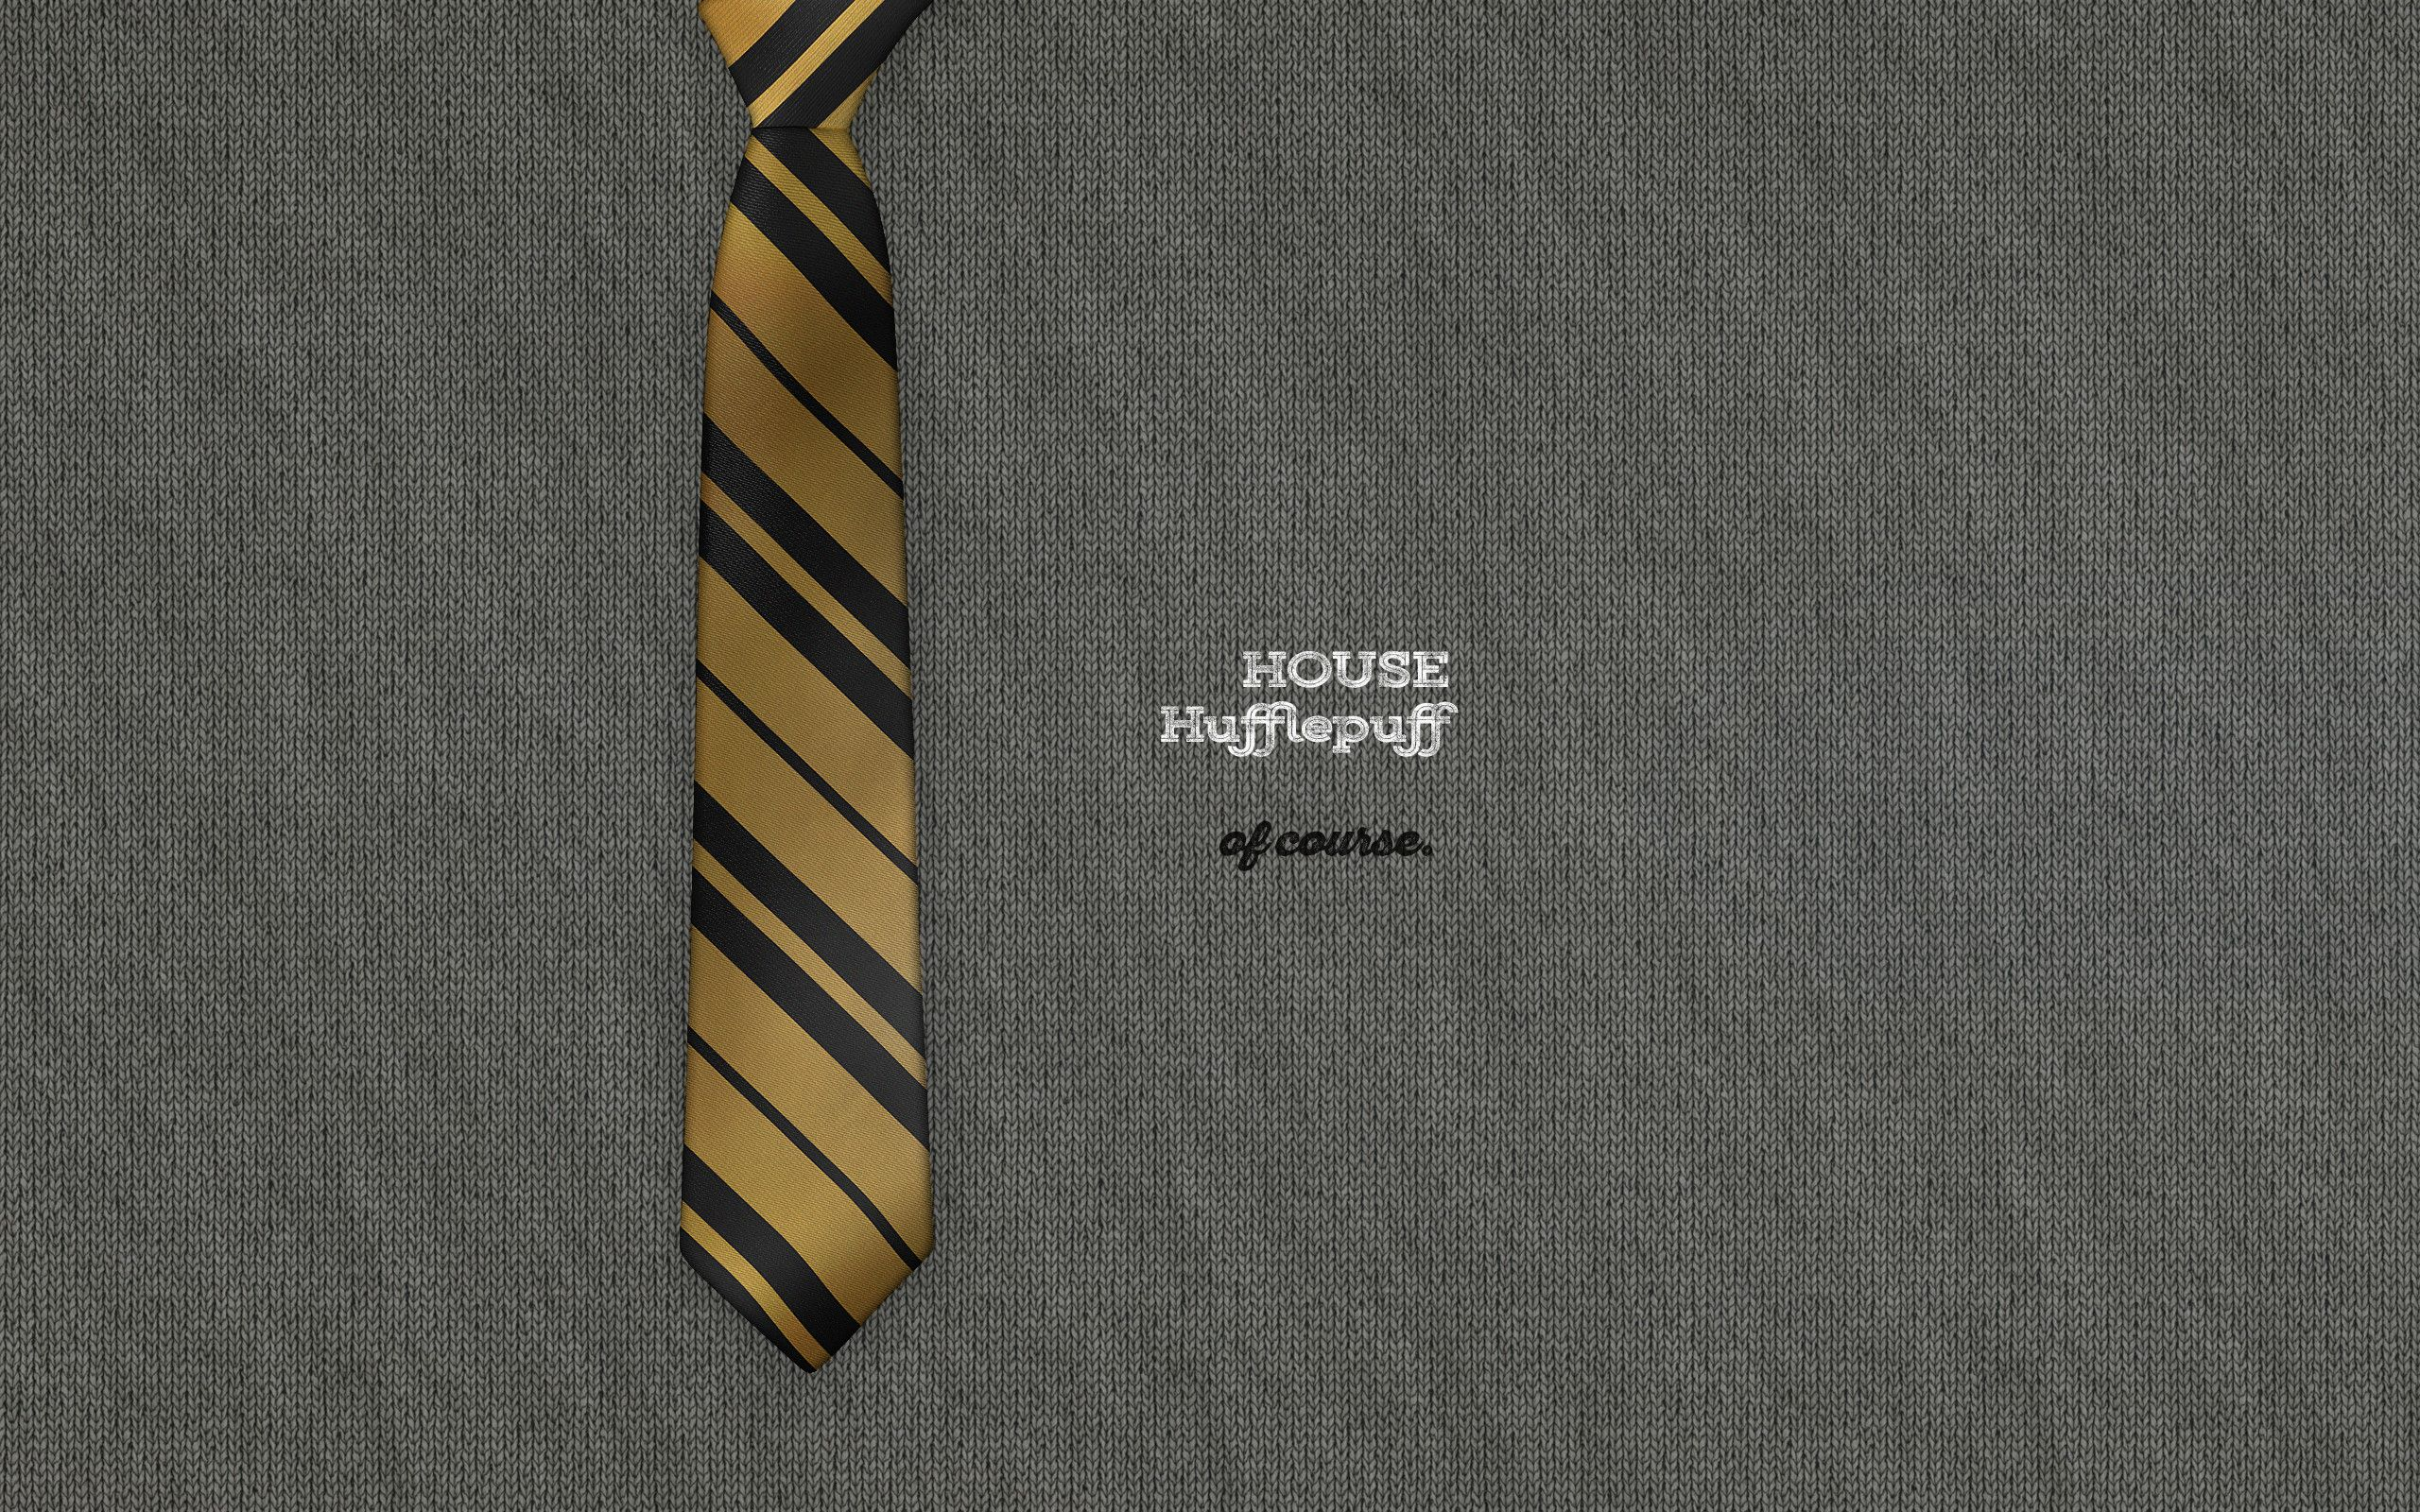 Hufflepuff Aesthetic Wallpapers Top Free Hufflepuff Aesthetic Backgrounds Wallpaperaccess